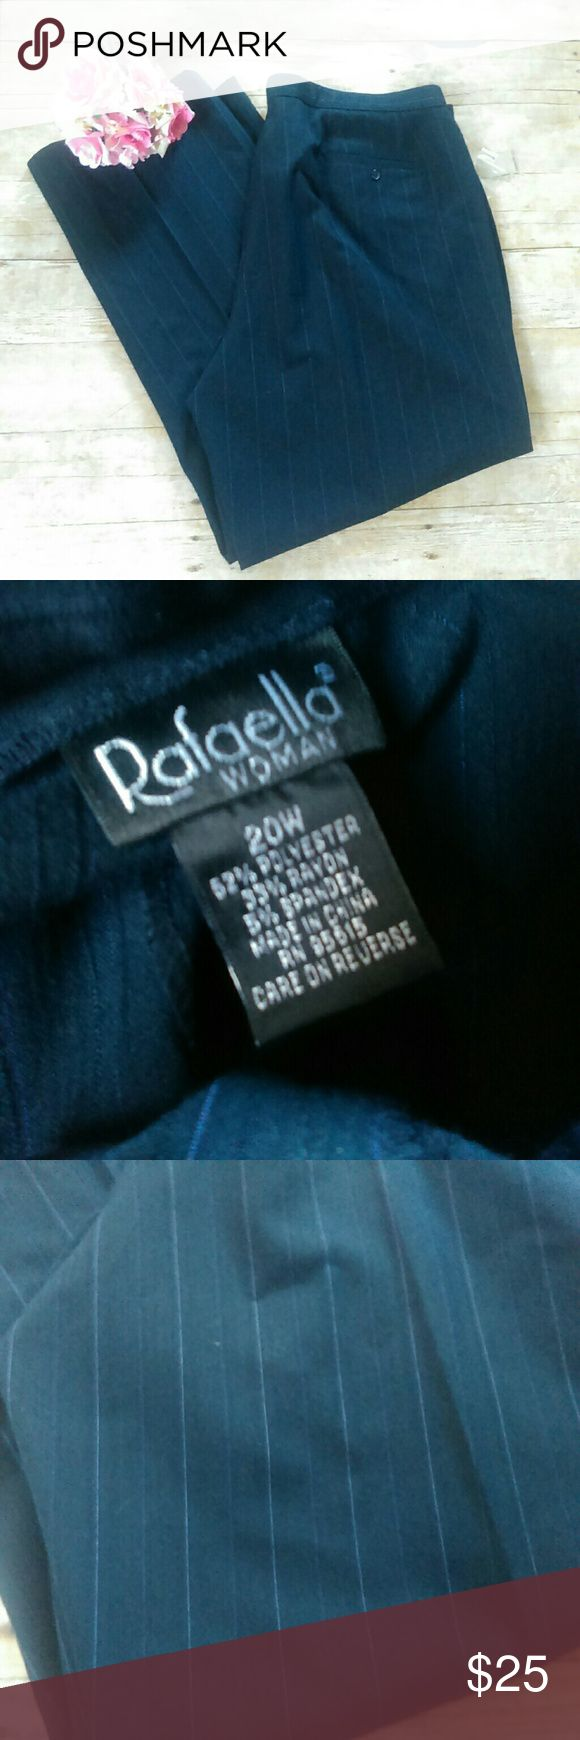 """NWOT Rafaella Pinstriped Trousers Size 20 W NWOT Rafaella Pinstriped Trousers Size 20 W Navy with blue pinstripes 62% Polyester, 33% rayon and 5% spandex Waist measures at 21"""" when flat Inseam measures at 32"""" Smoke and pet free home  #483 Rafaella Pants Trousers"""